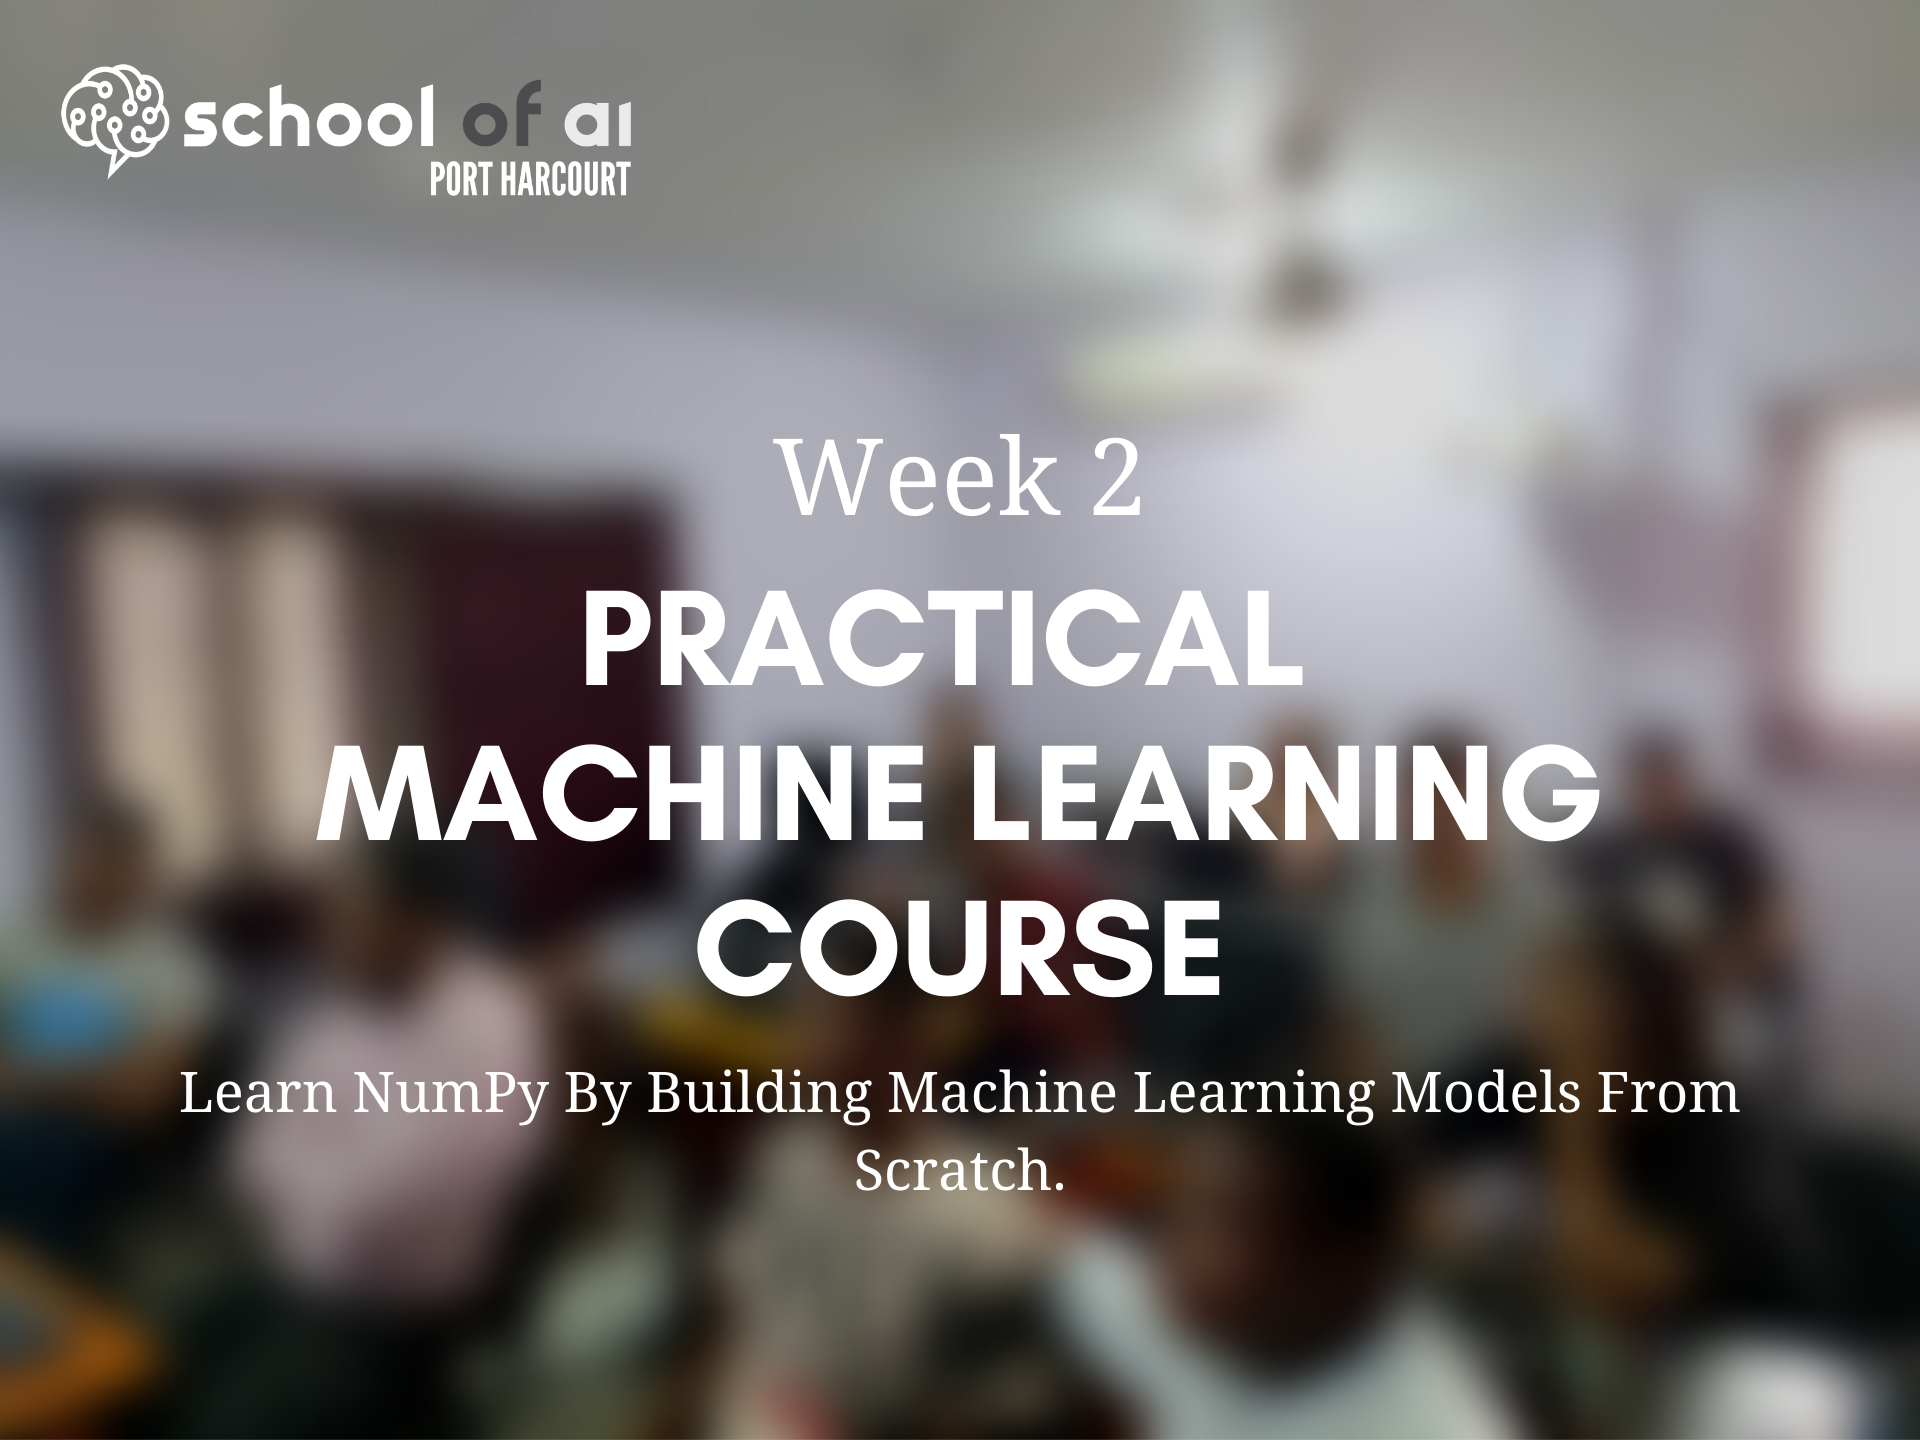 Week 2 Practical Machine Learning Course Highlights